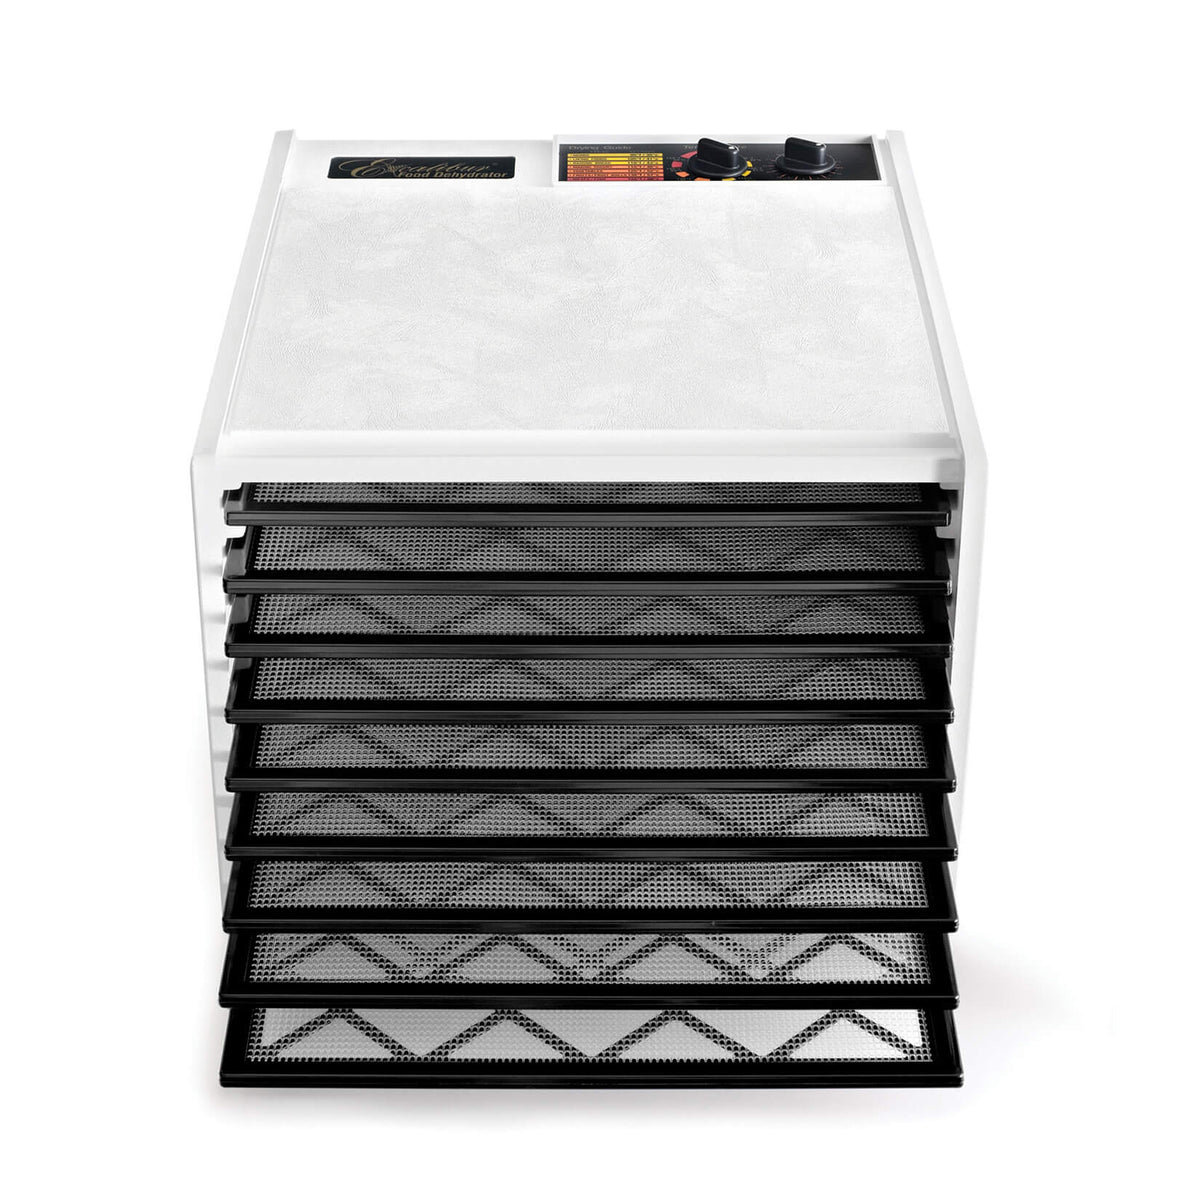 Excalibur 4926TW white 9 tray dehydrator front view with door open and trays pulled out.